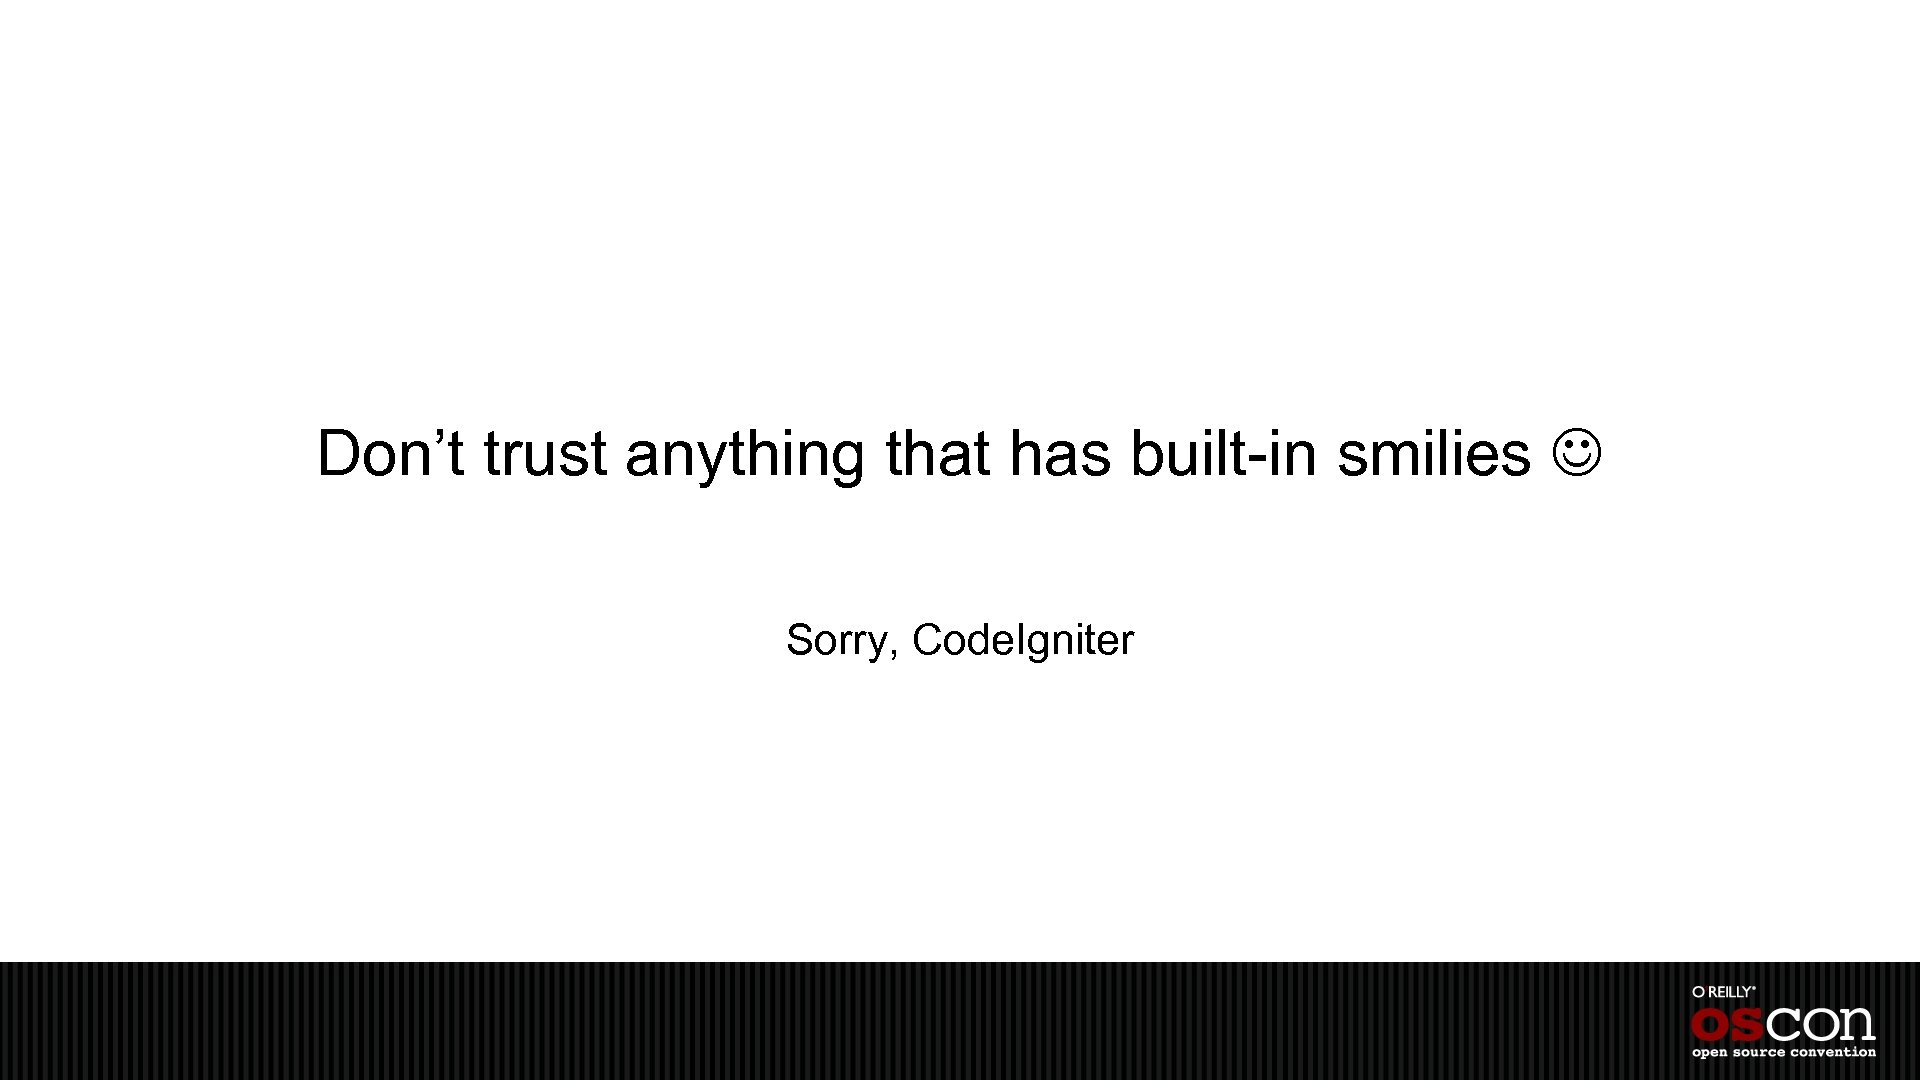 Don't trust anything that has built-in smilies Sorry, Code. Igniter